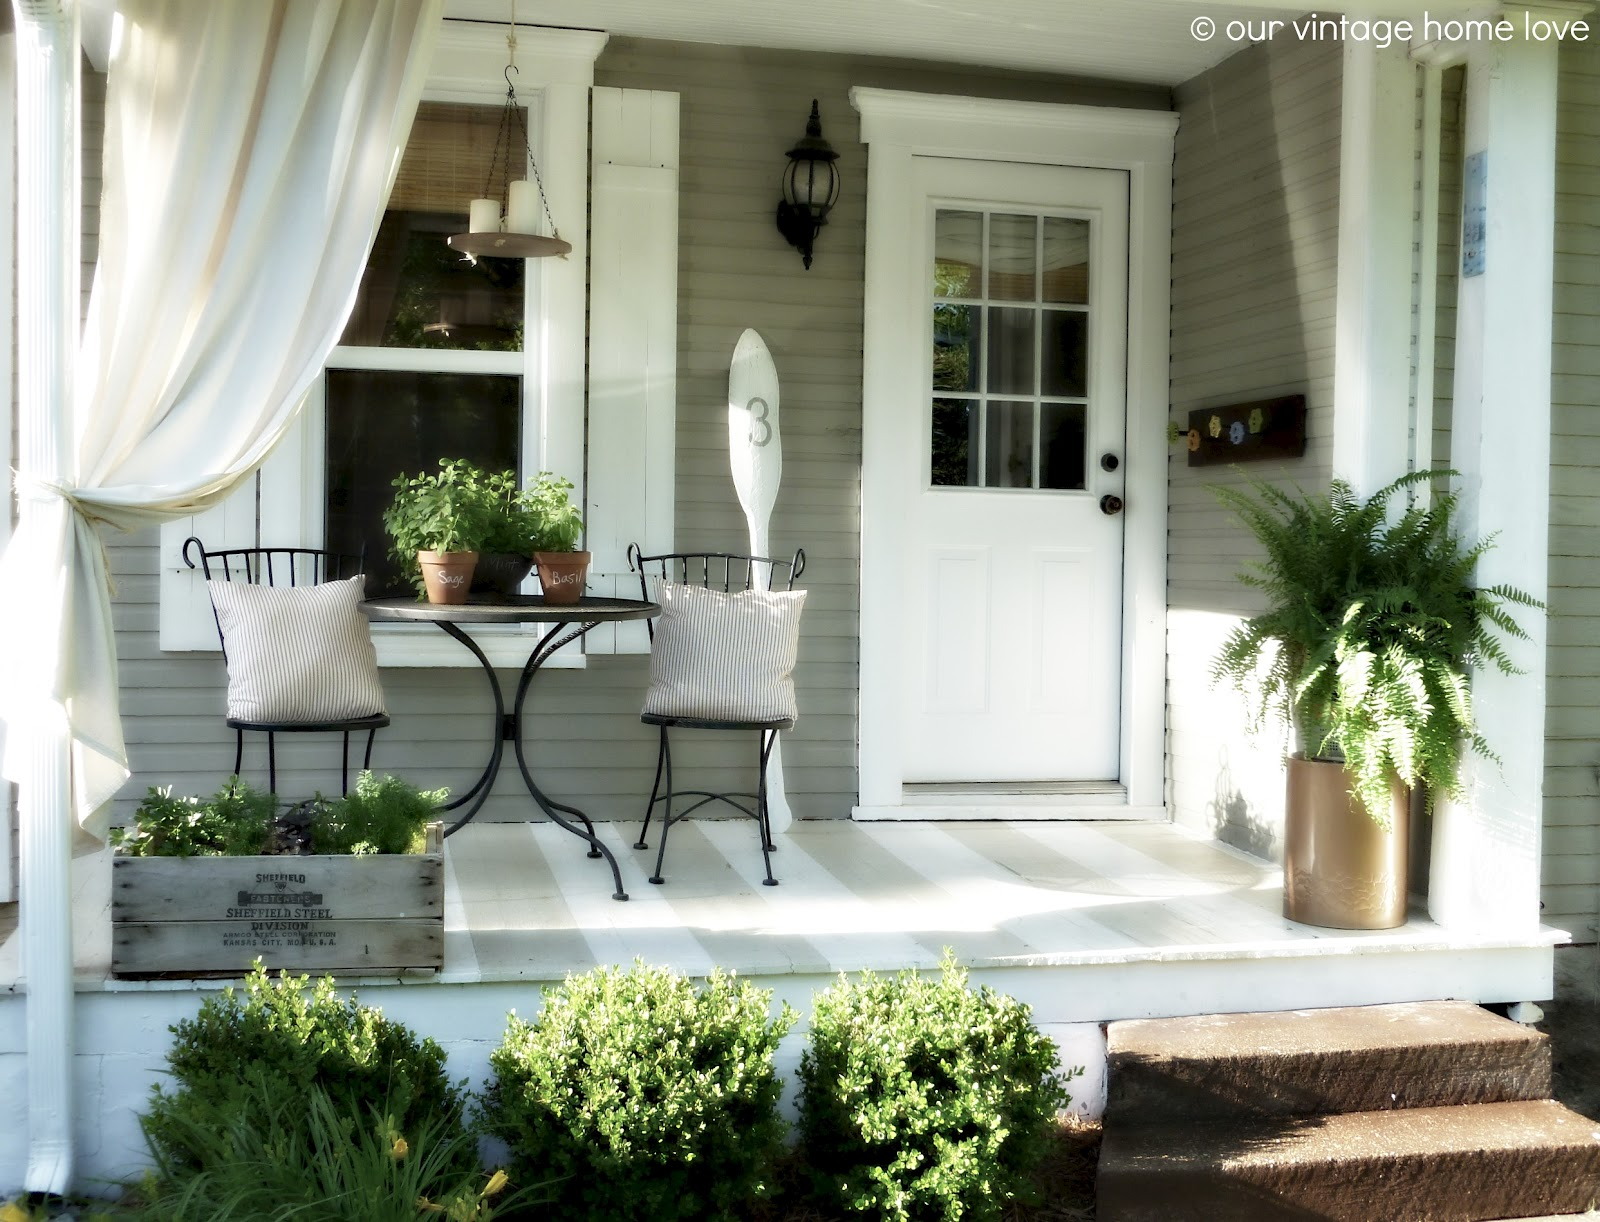 our vintage home love back side porch ideas for summer